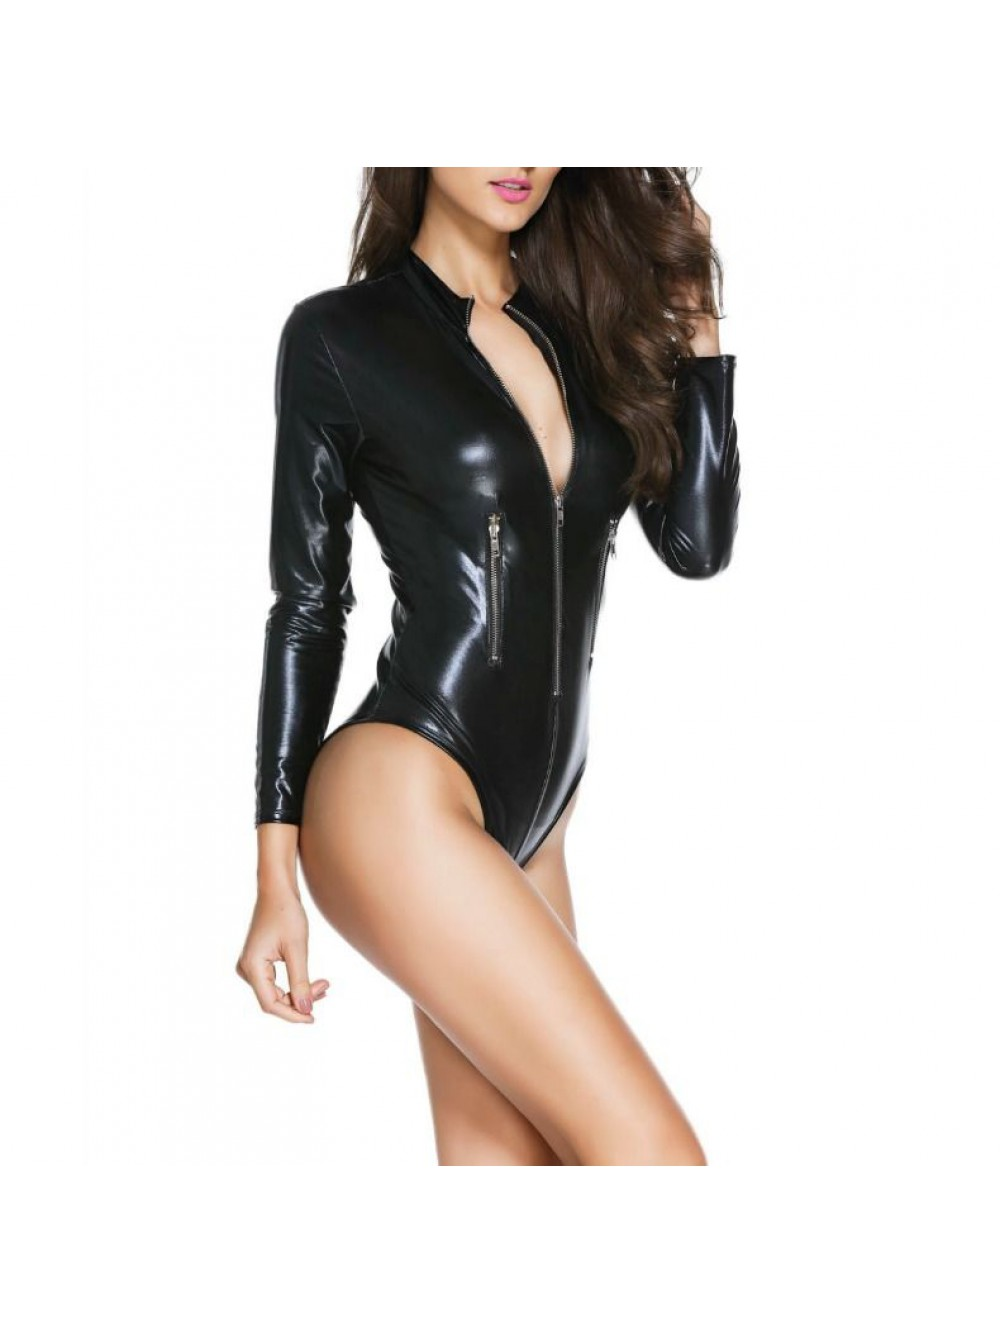 QUEEN LINGERIE TEDDY INSPIRE BLACK LEATHER M 702949729065